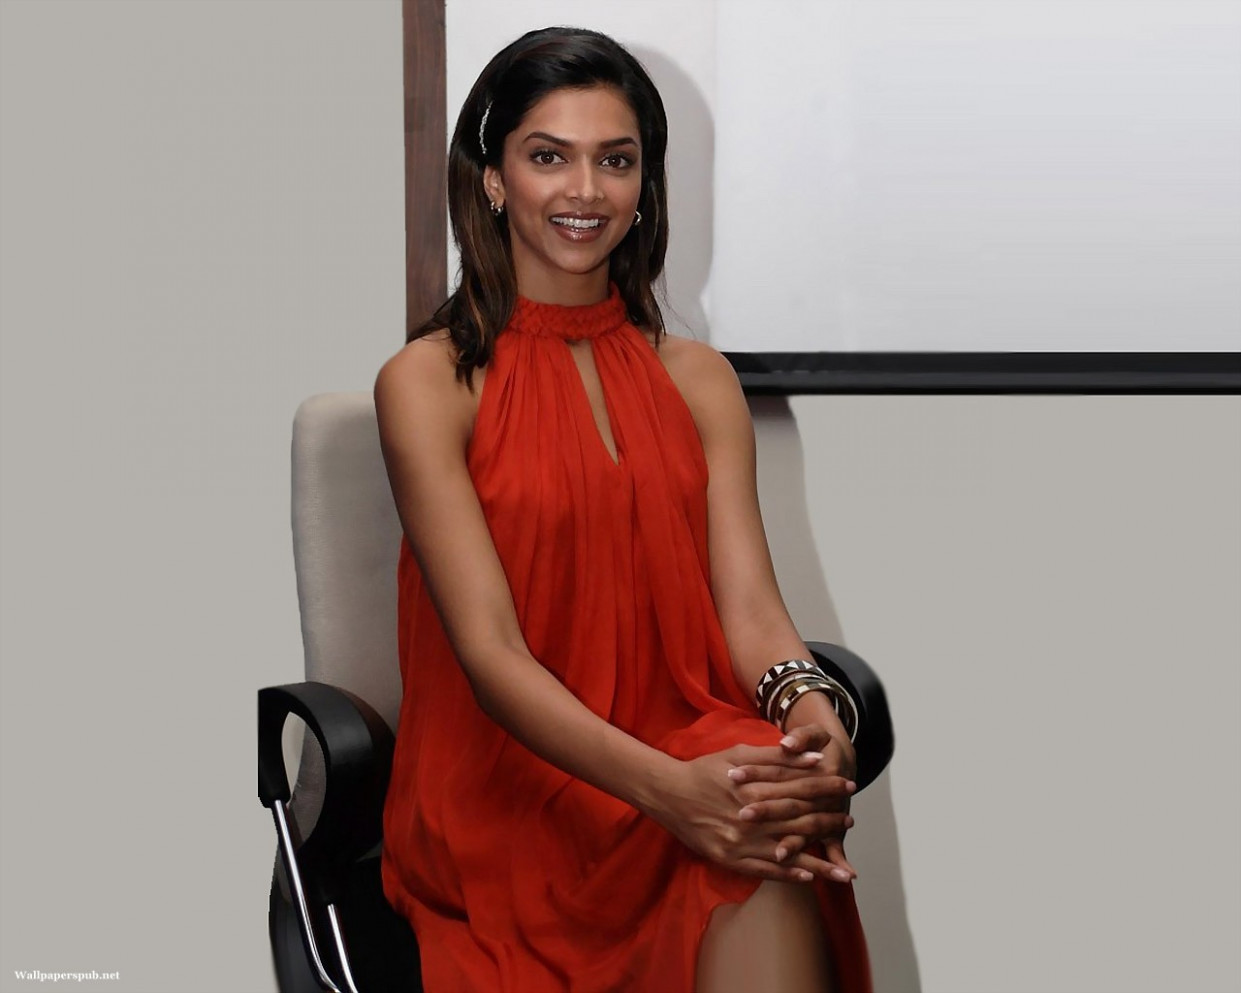 BollyWood Queen Actress Deepika Padukone Wallpapers 2011 ...